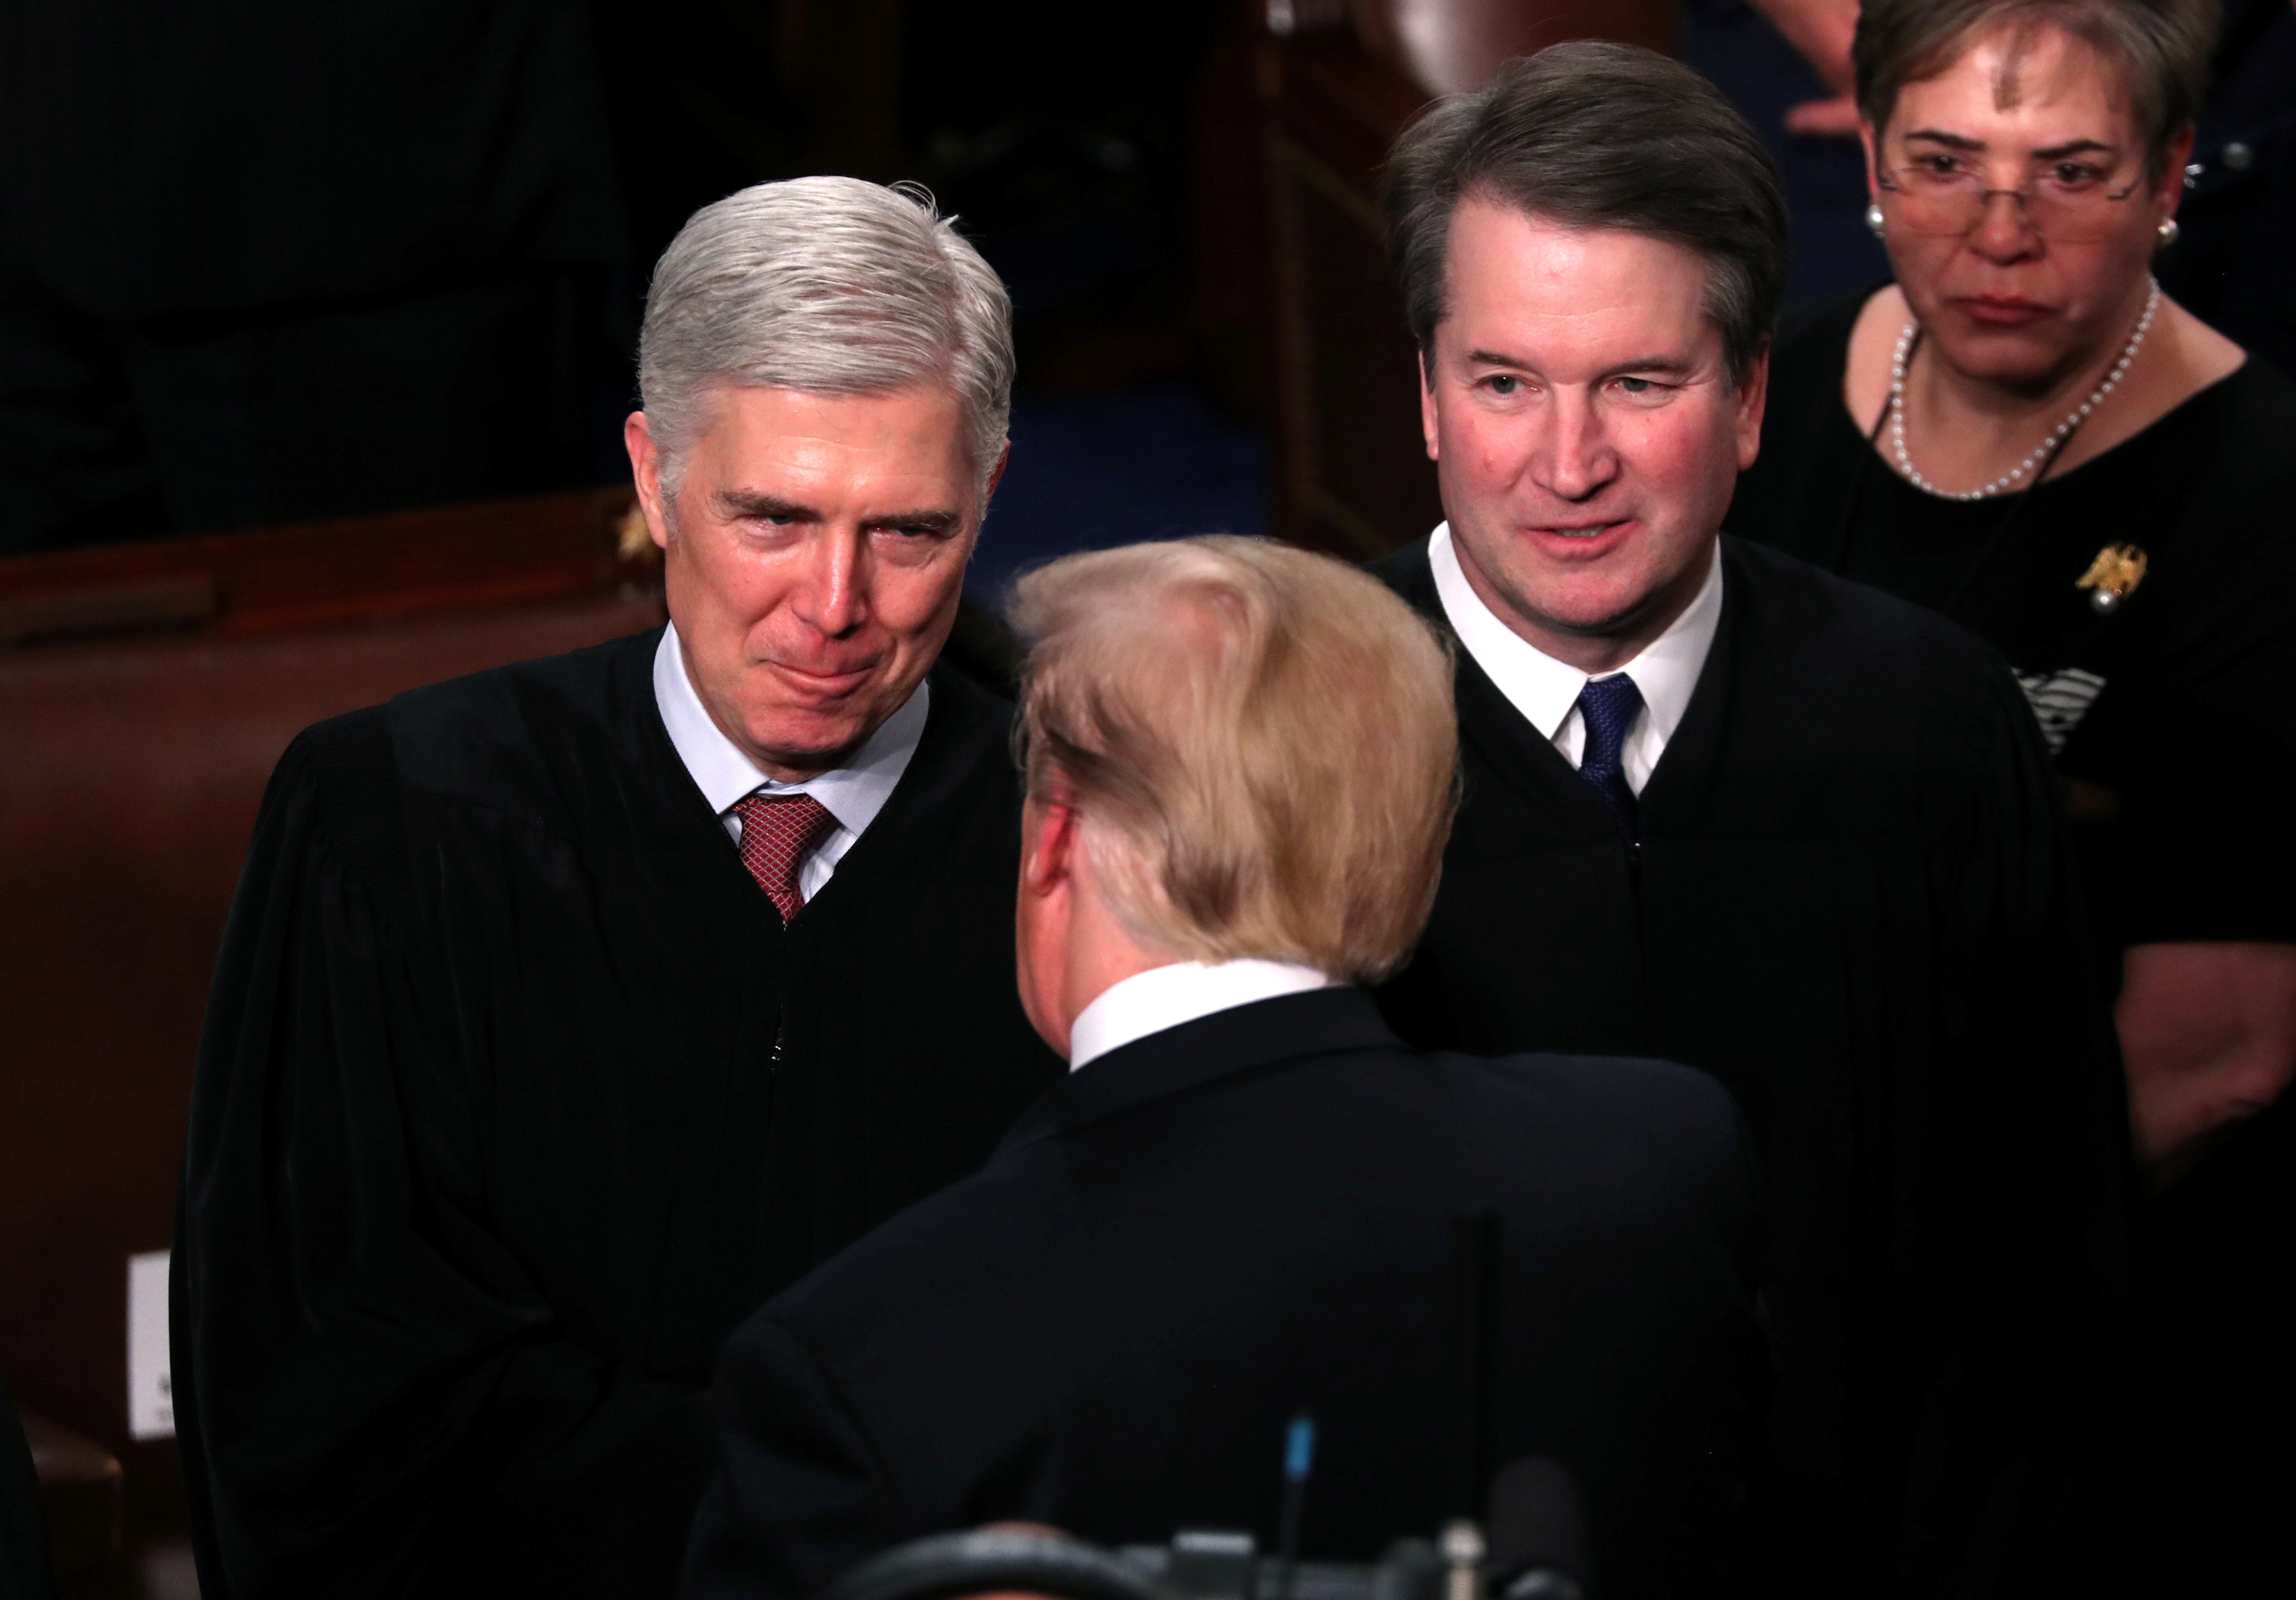 U.S. President Donald Trump greets Supreme Court justices as he arrives to deliver his second State of the Union address to a joint session of the U.S. Congress in Washington